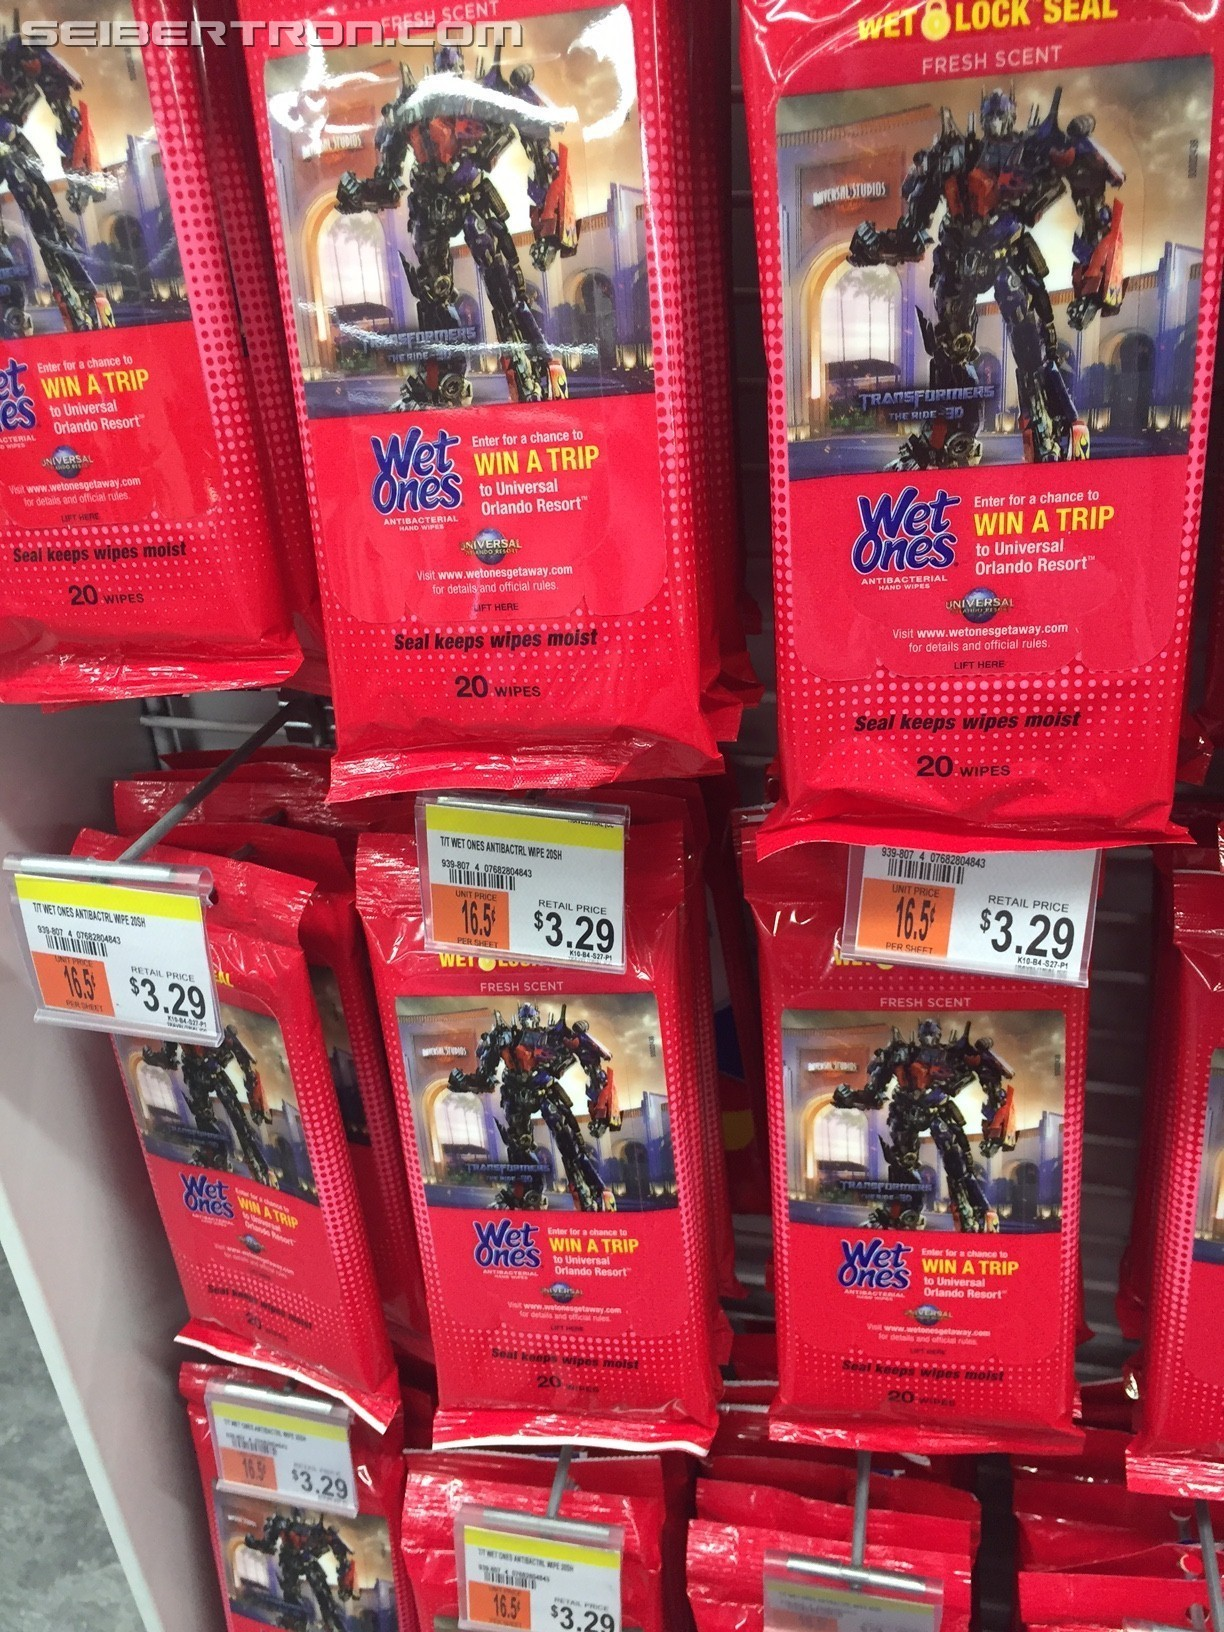 Transformers News: Transformers Branded Wet Ones Wipes Found at Retail and Universal Studios Vacation Contest